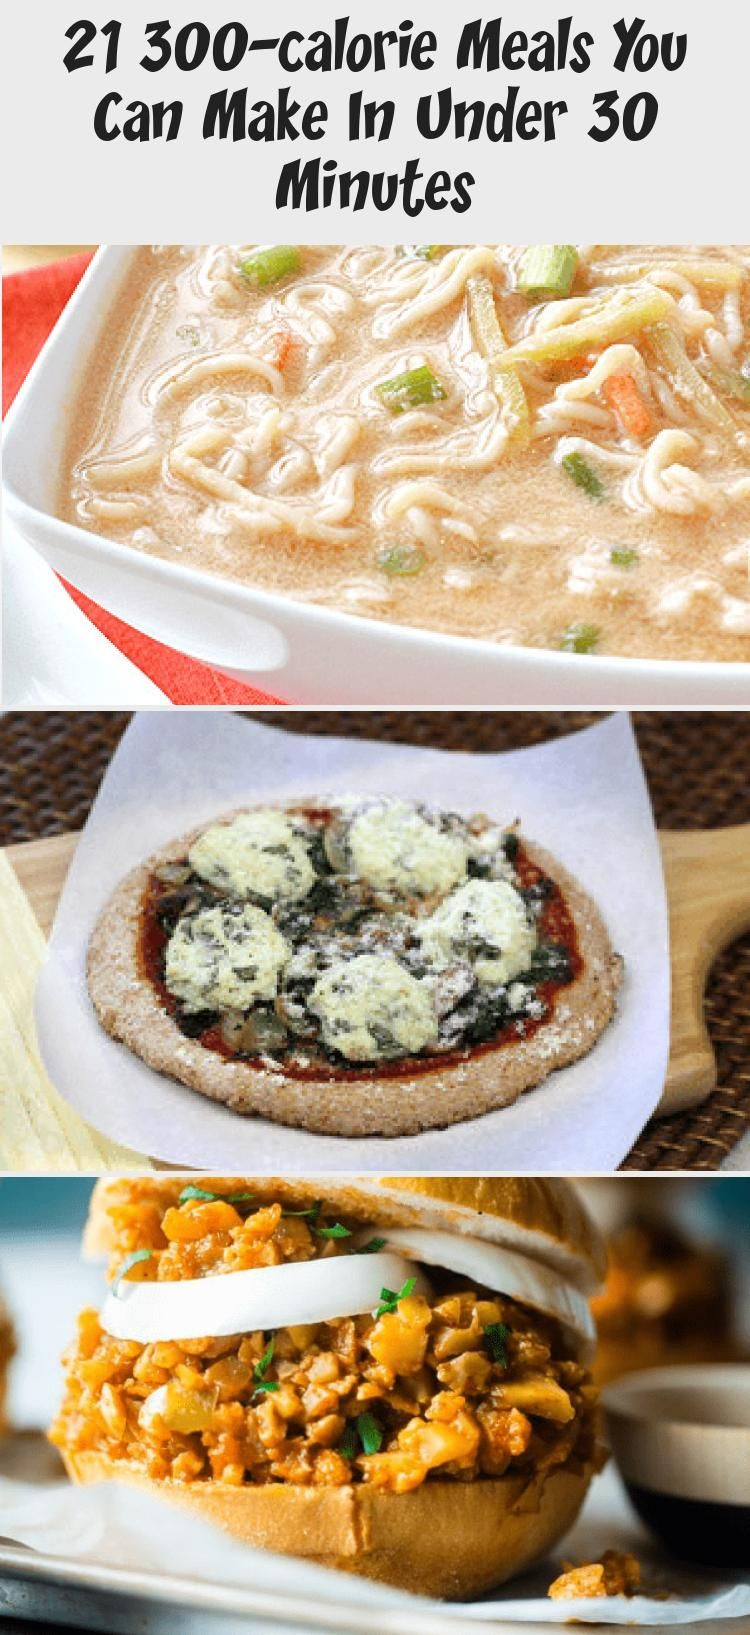 21 300-calorie Meals You Can Make In Under 30 Minutes - Pinokyo #300caloriemeals